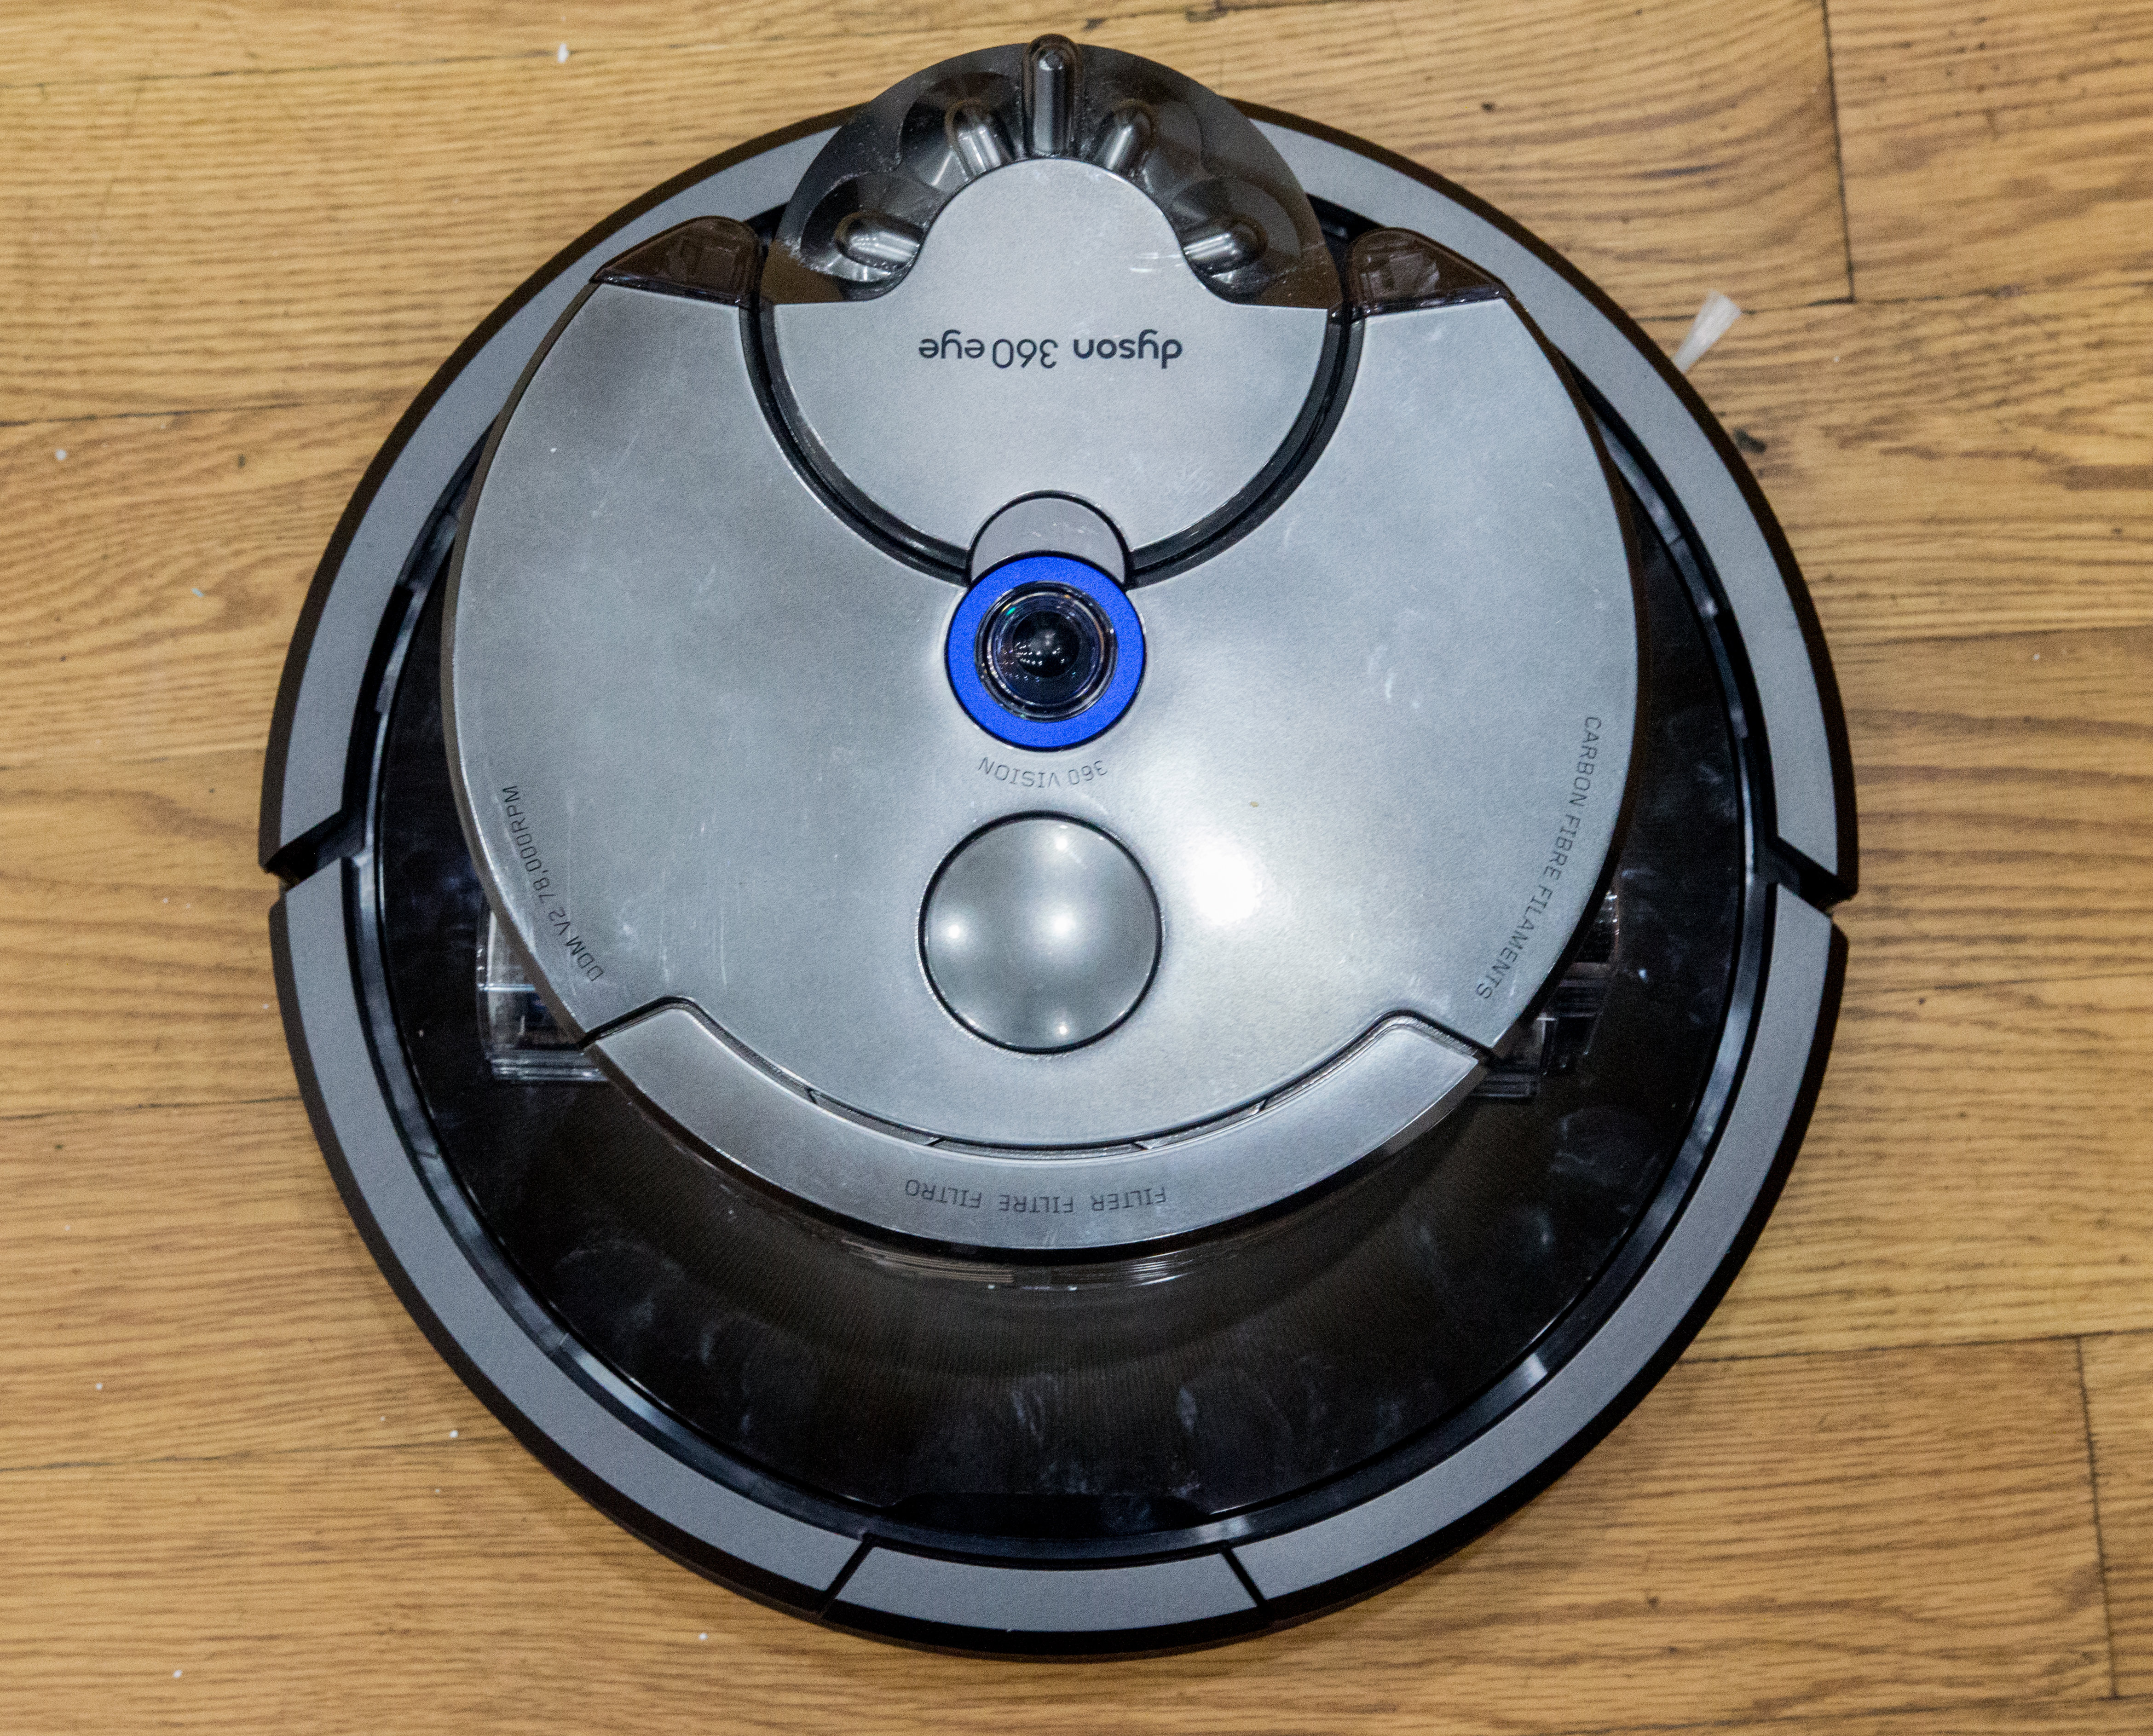 The 360 Eye is has a smaller footprint, but is taller than most robot vacuums.